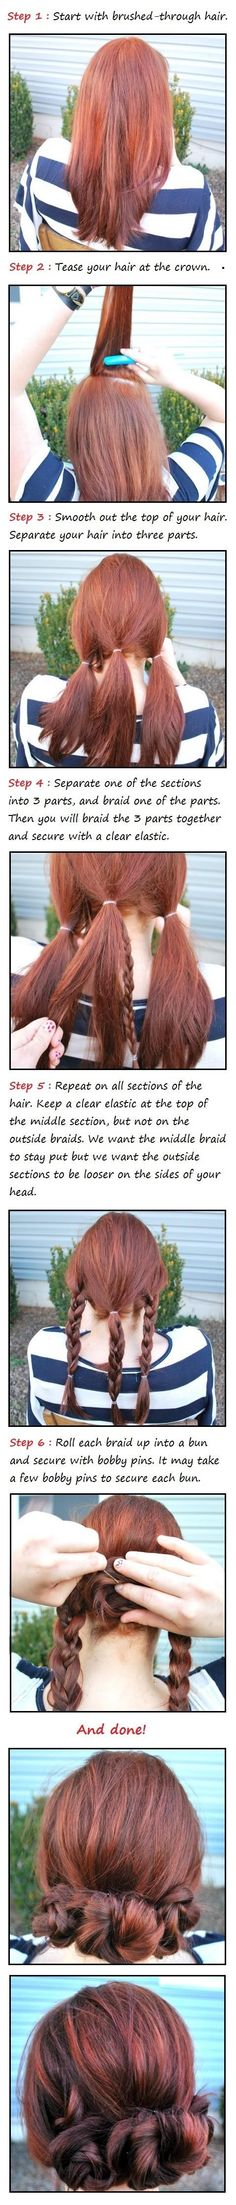 The three Braided Buns Hair Tutorial, i want to try this when my hair is long again